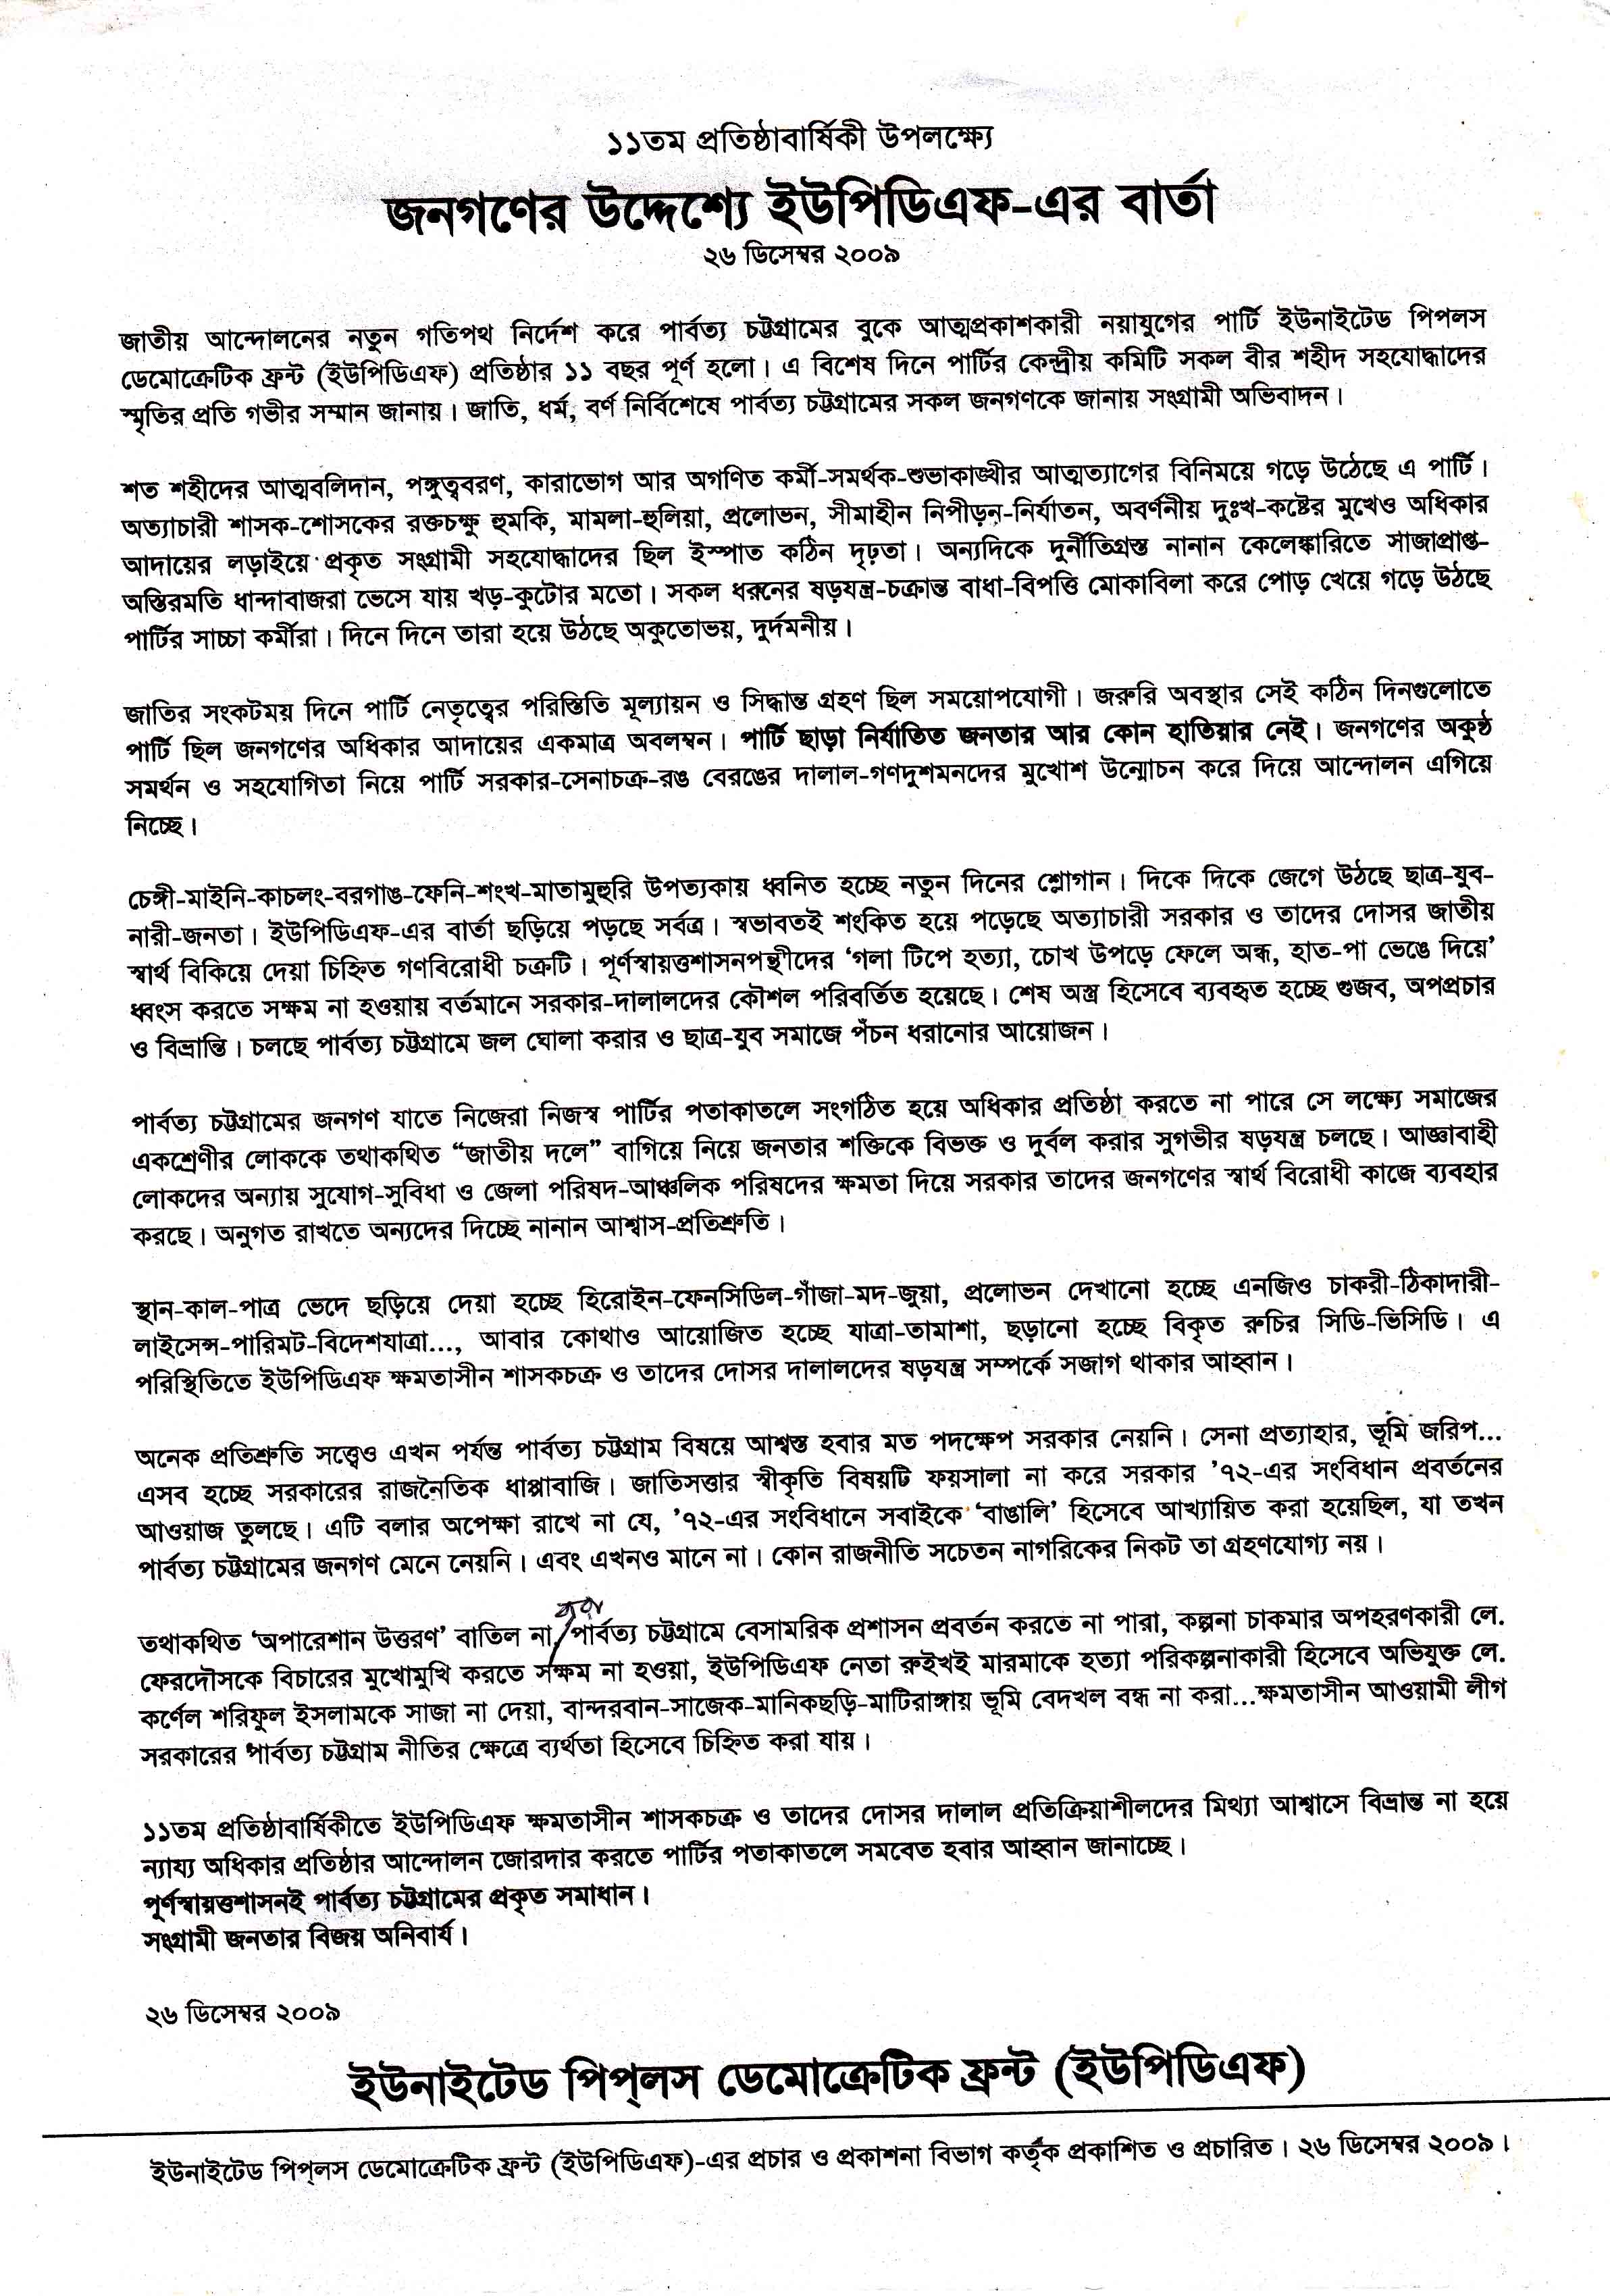 Leaflet on 11th founding anniversary